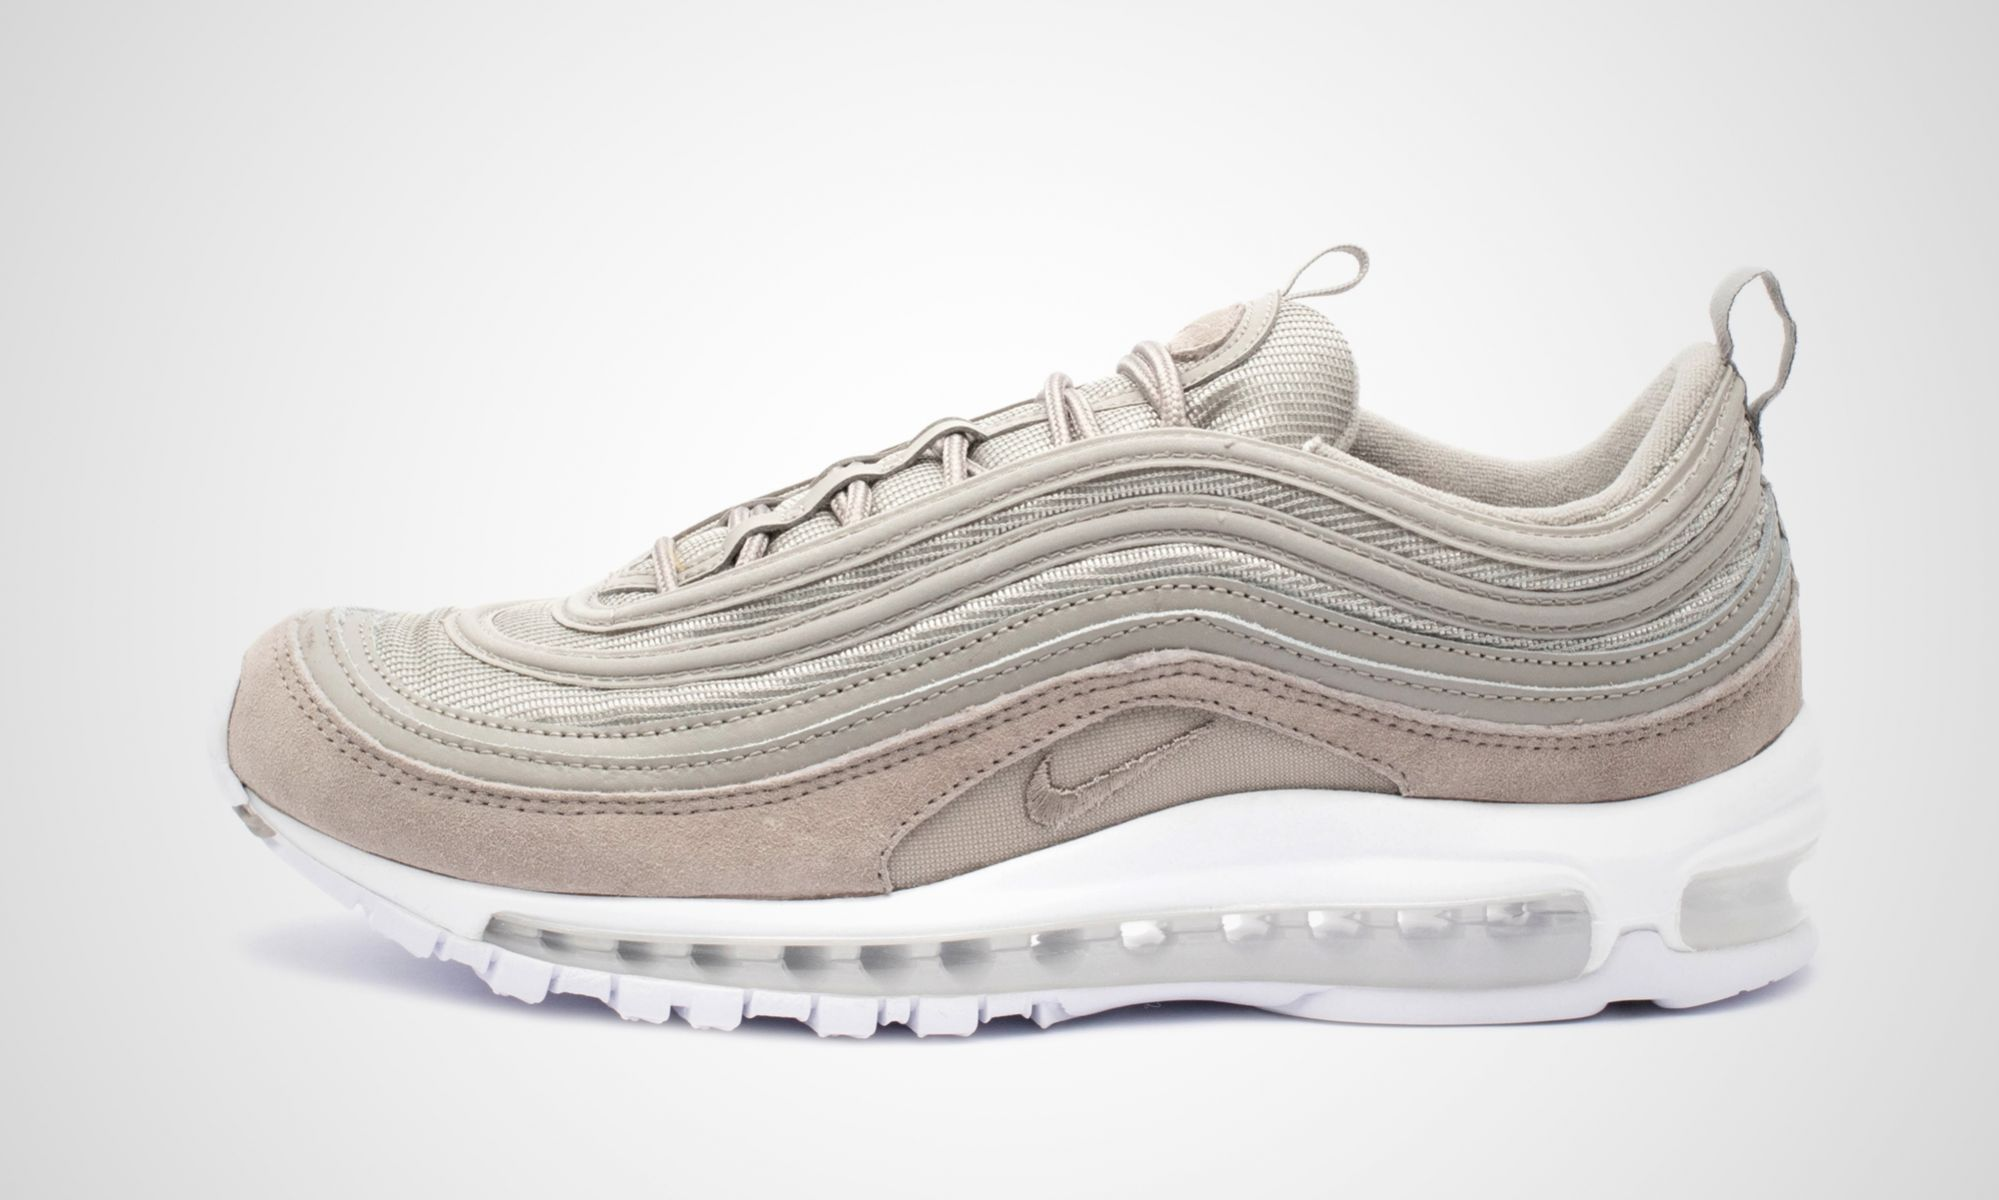 Nike Air Max 97 Cobblestone | Dead Stock Sneakerblog